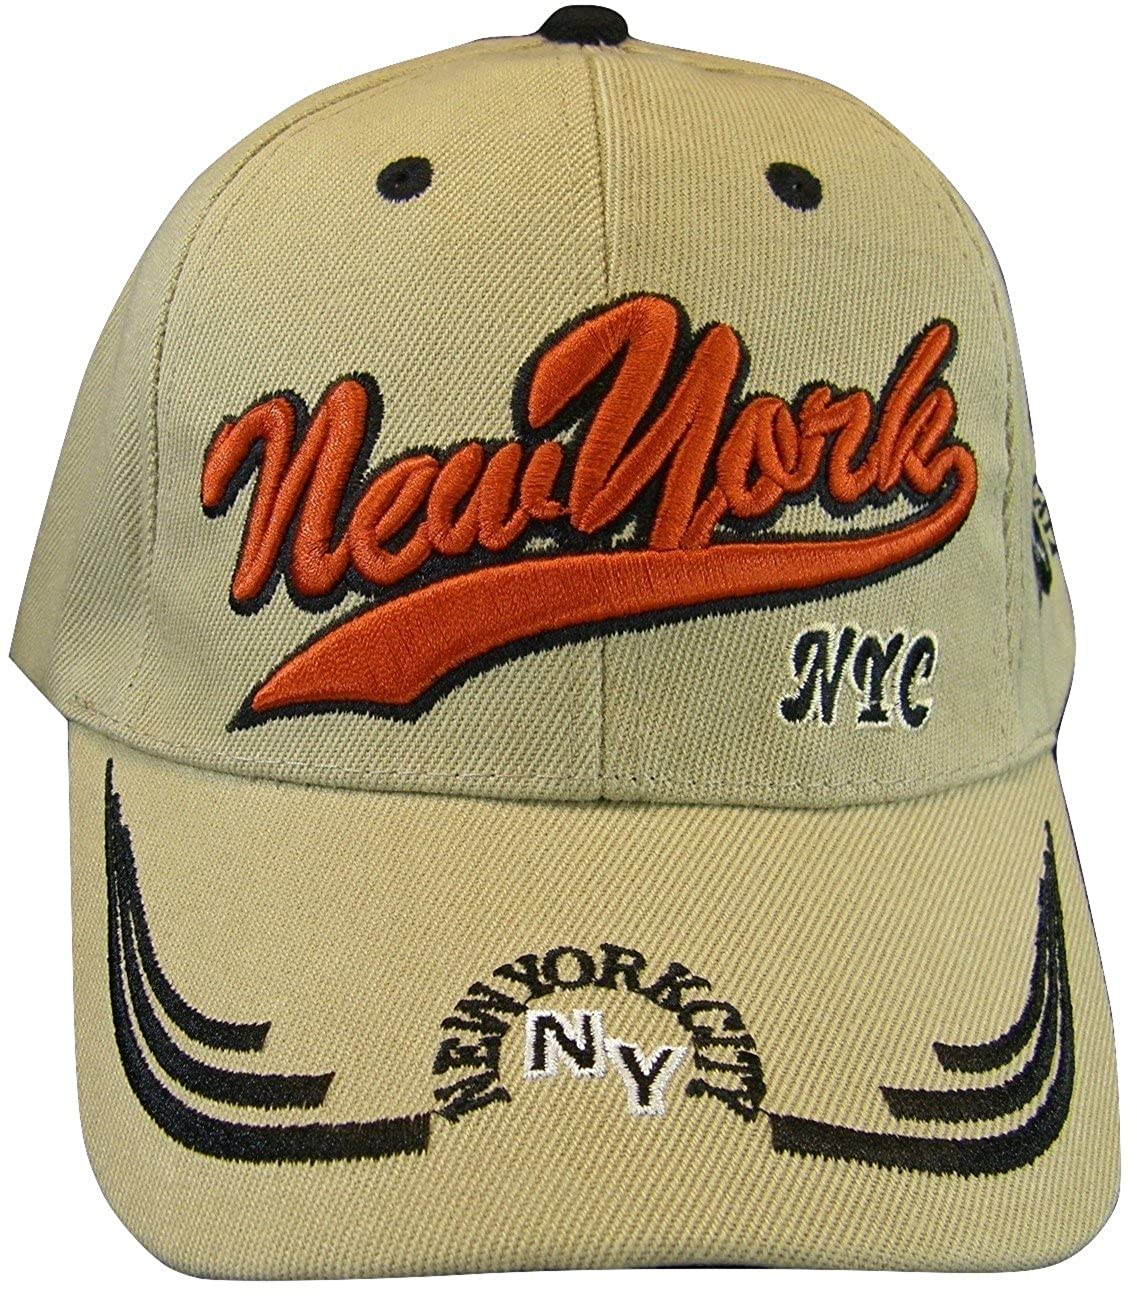 New York City NY Adult Size Curved Brim Adjustable Baseball Cap (Khaki) at  Amazon Men s Clothing store  ac4489d45ba